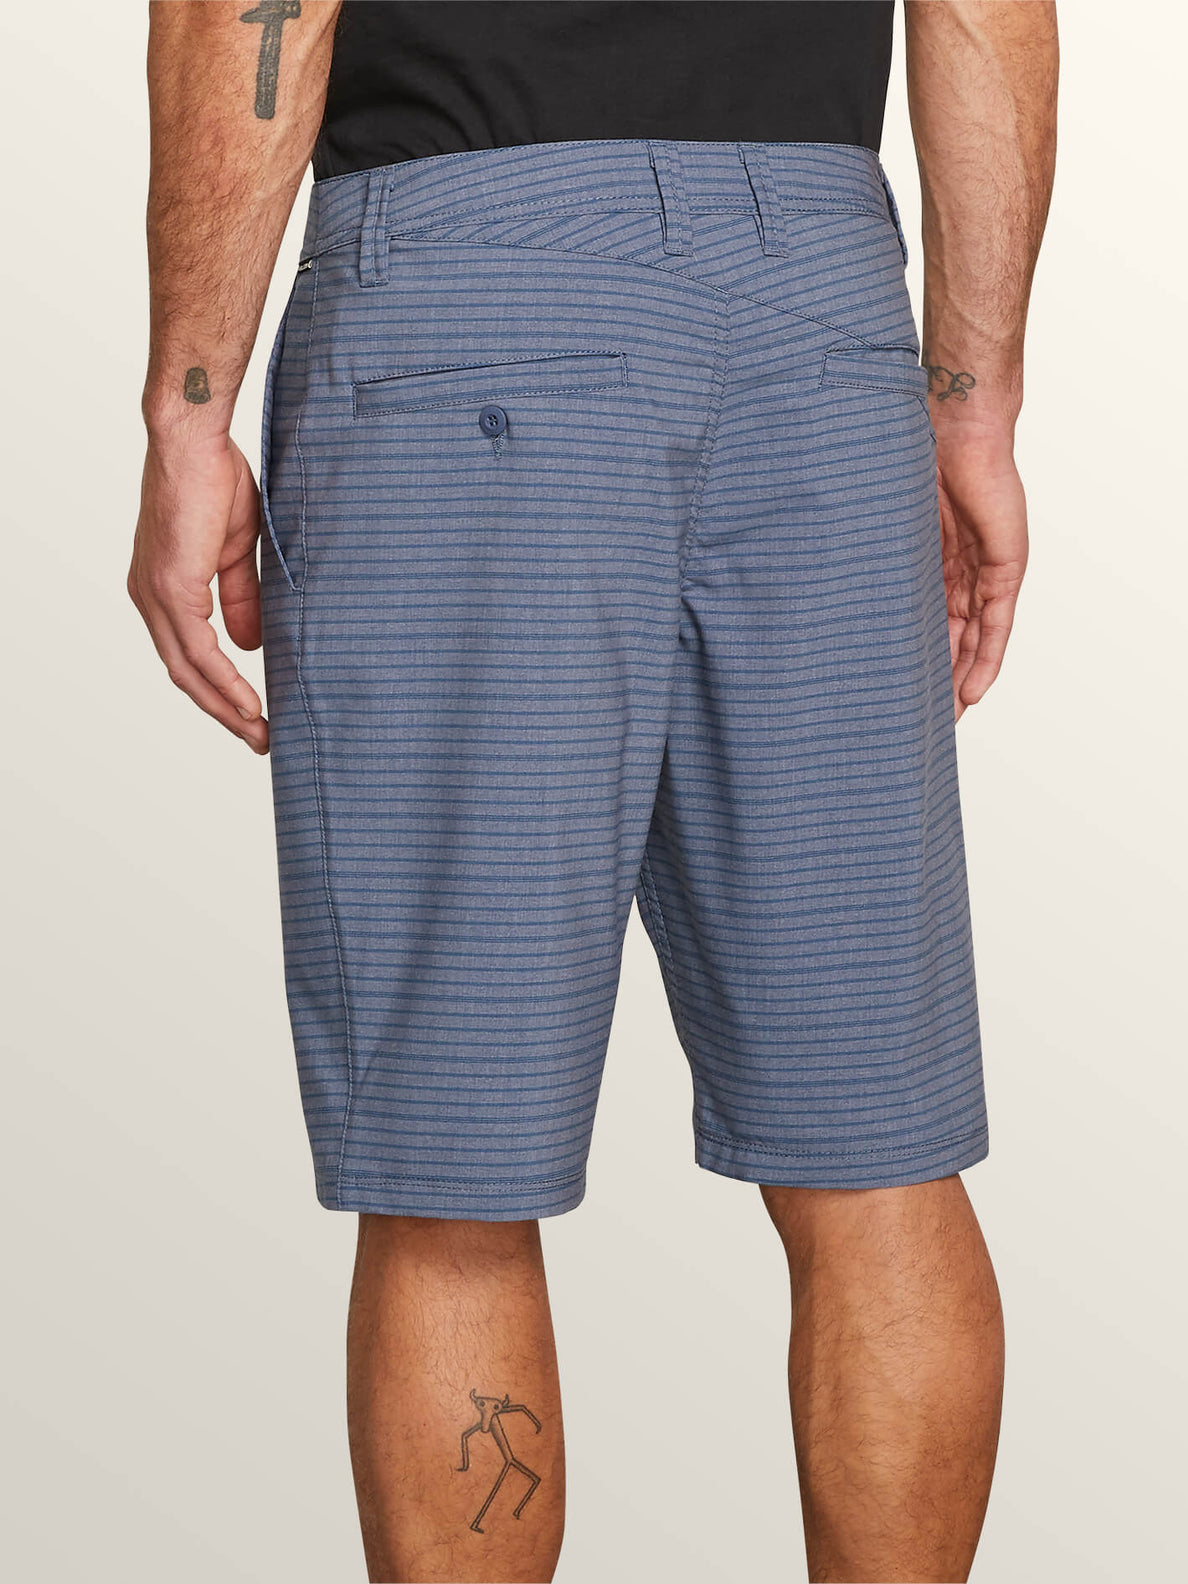 Frickin Surf N' Turf Mix Hybrid Shorts In Snow Vintage Navy, Alternate View